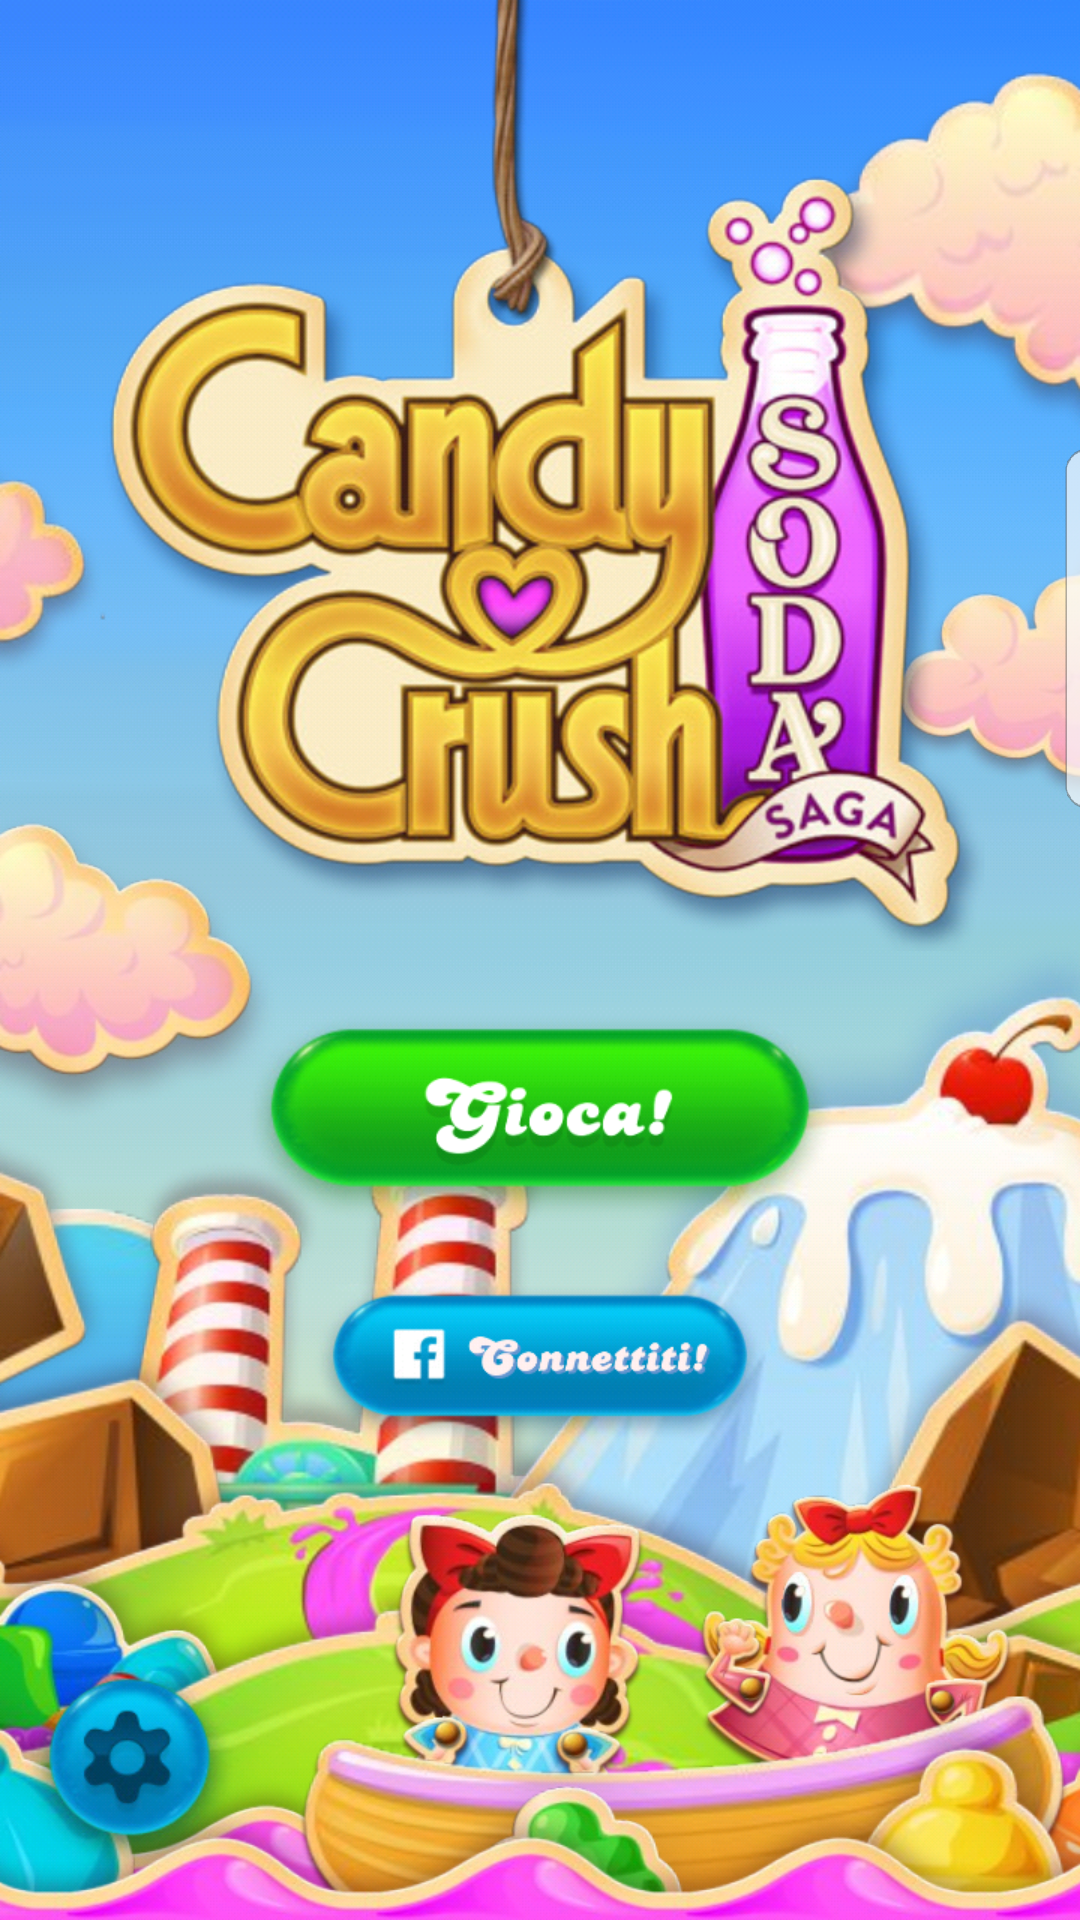 Candy Crush Soda Spiel